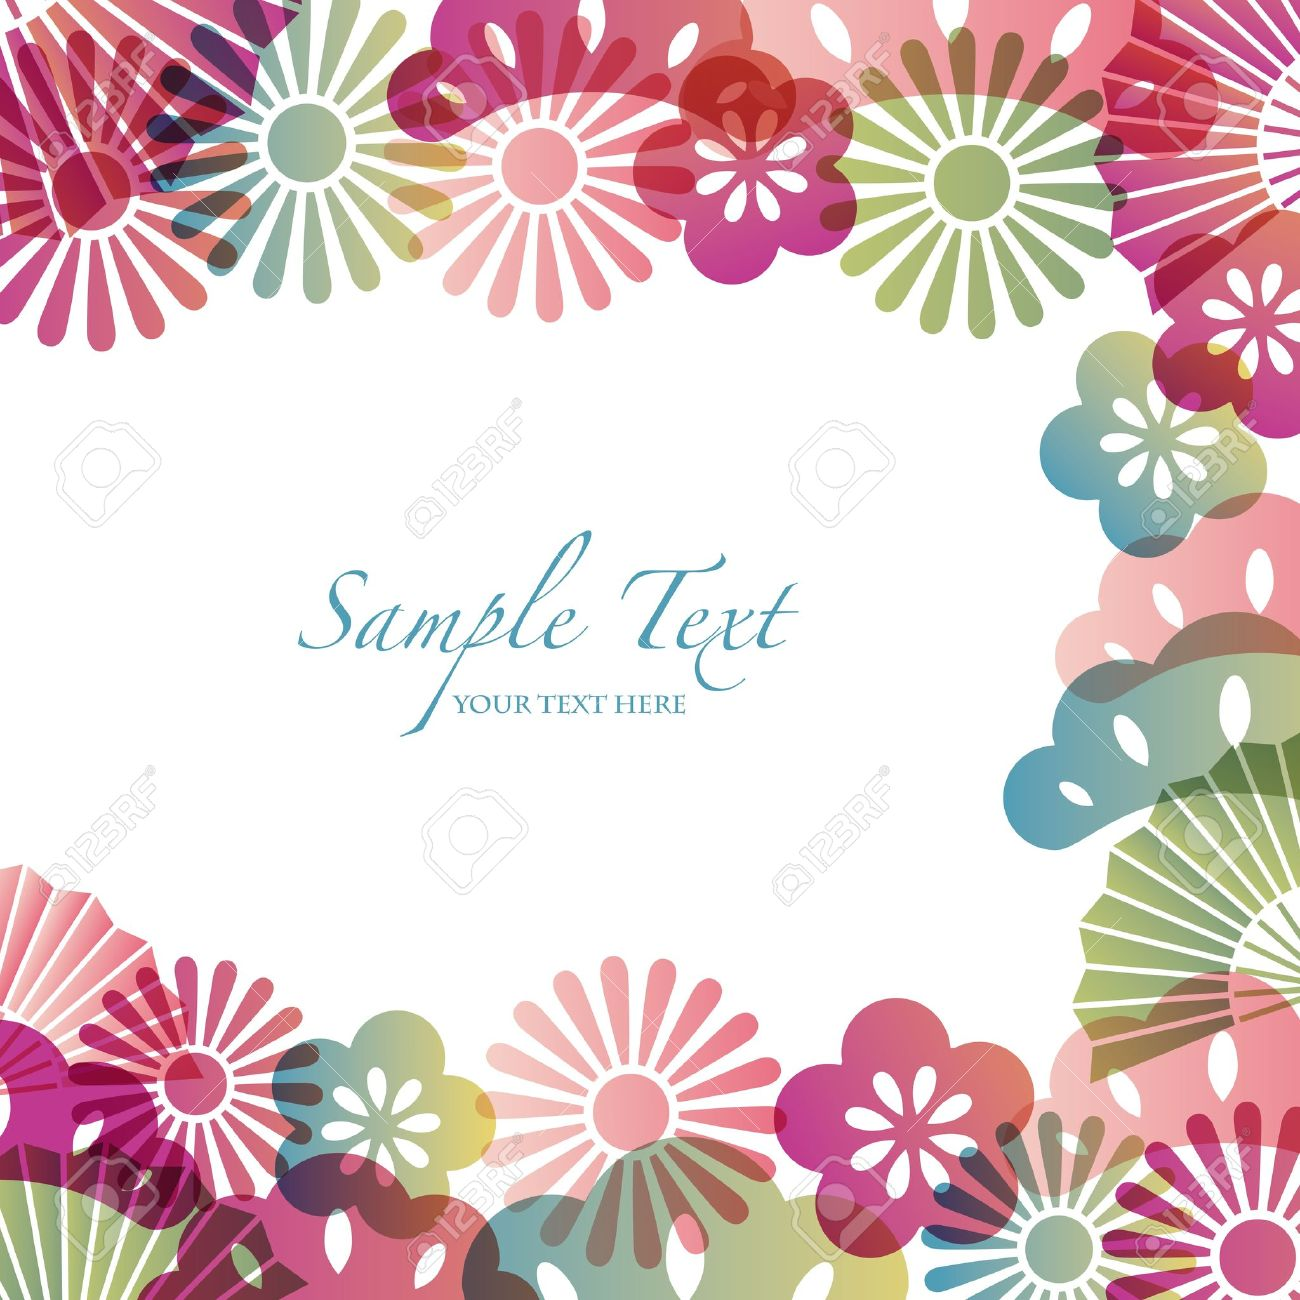 320 Japanese Apricot Stock Vector Illustration And Royalty Free.